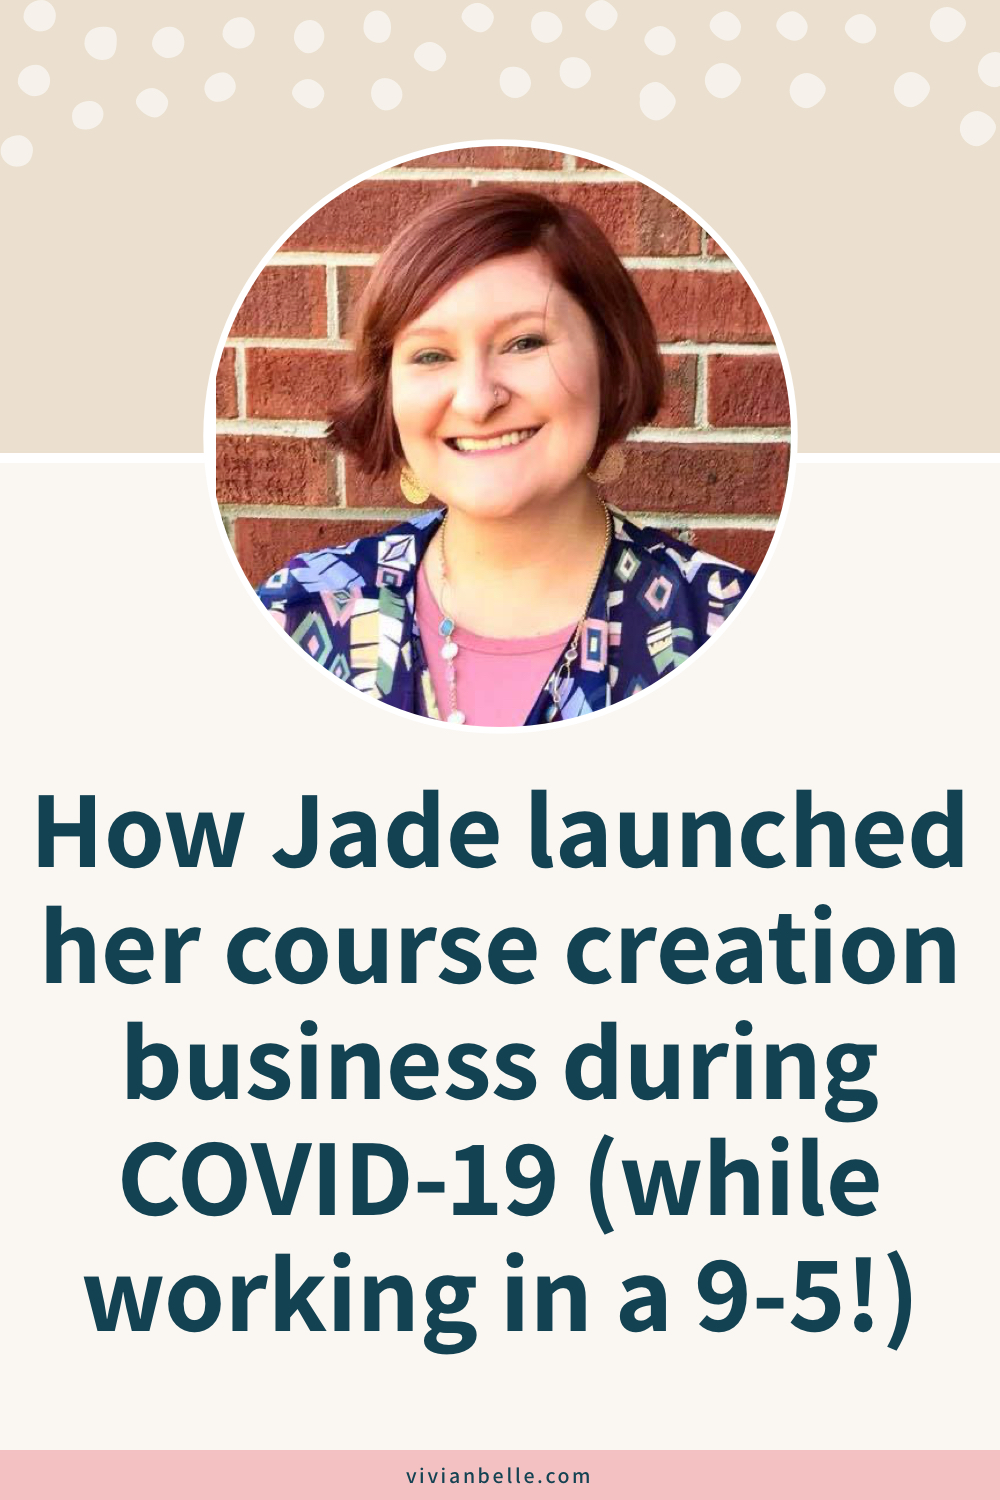 How Jade launched her course creation business during COVID-19 (while working in a 9-5!)